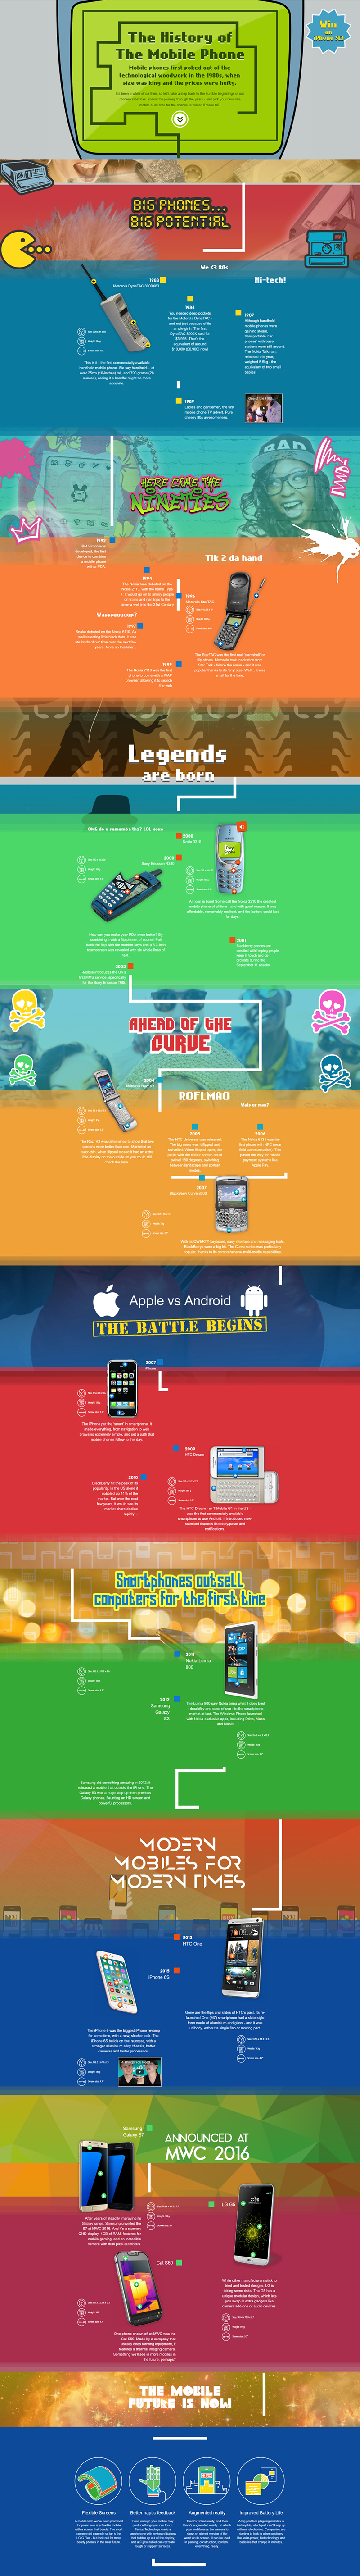 The-History-of-Mobile-Phones-2